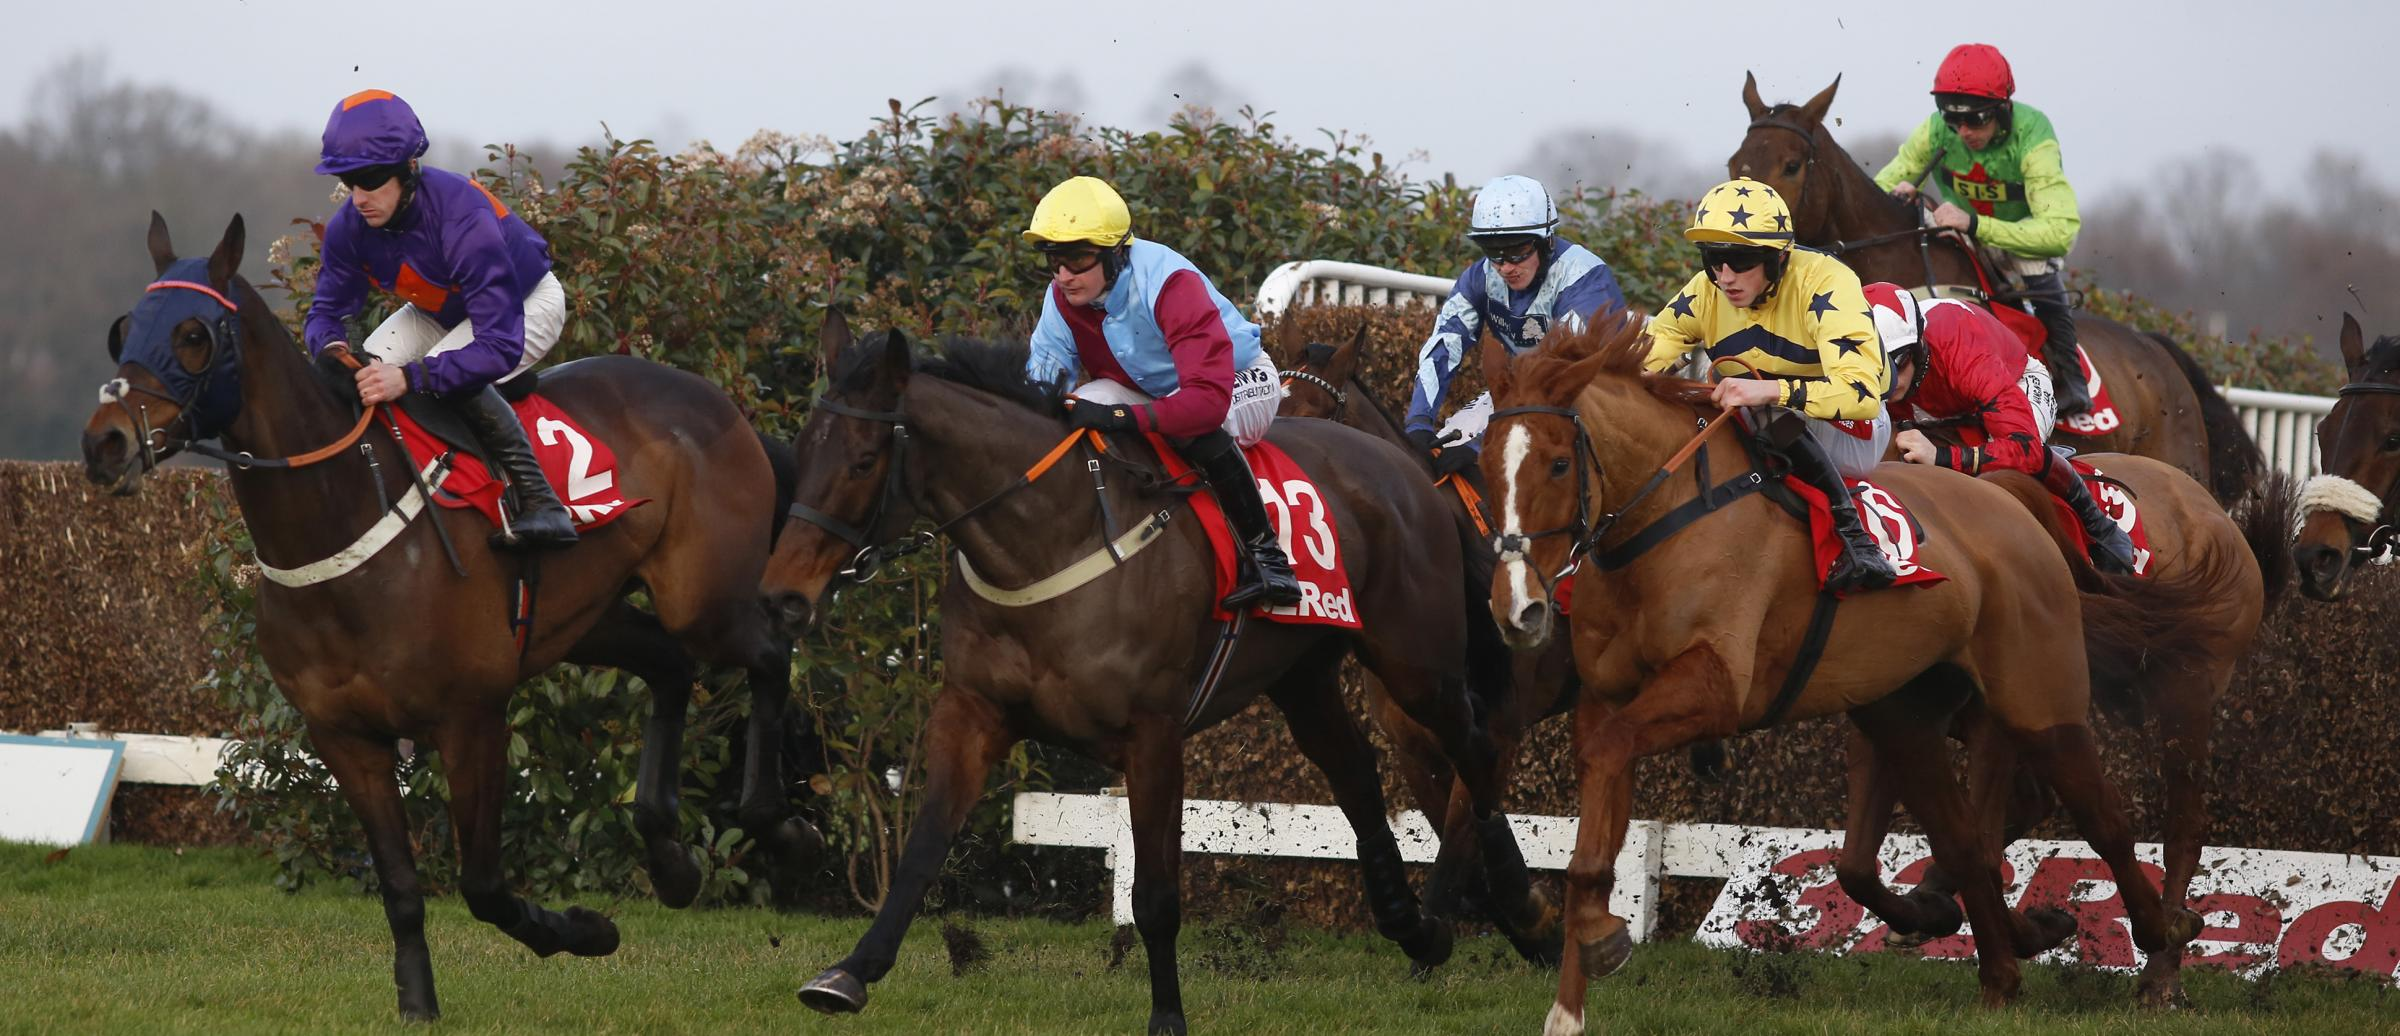 Charlie Longsdon's Pete The Feat (blue cap) is well-paced in the 32Red Veterans' Handicap Steeple Chase at Sandown before Buywise (red cap) came through to beat him into second        Picture: Julian Herbert/PA Wire